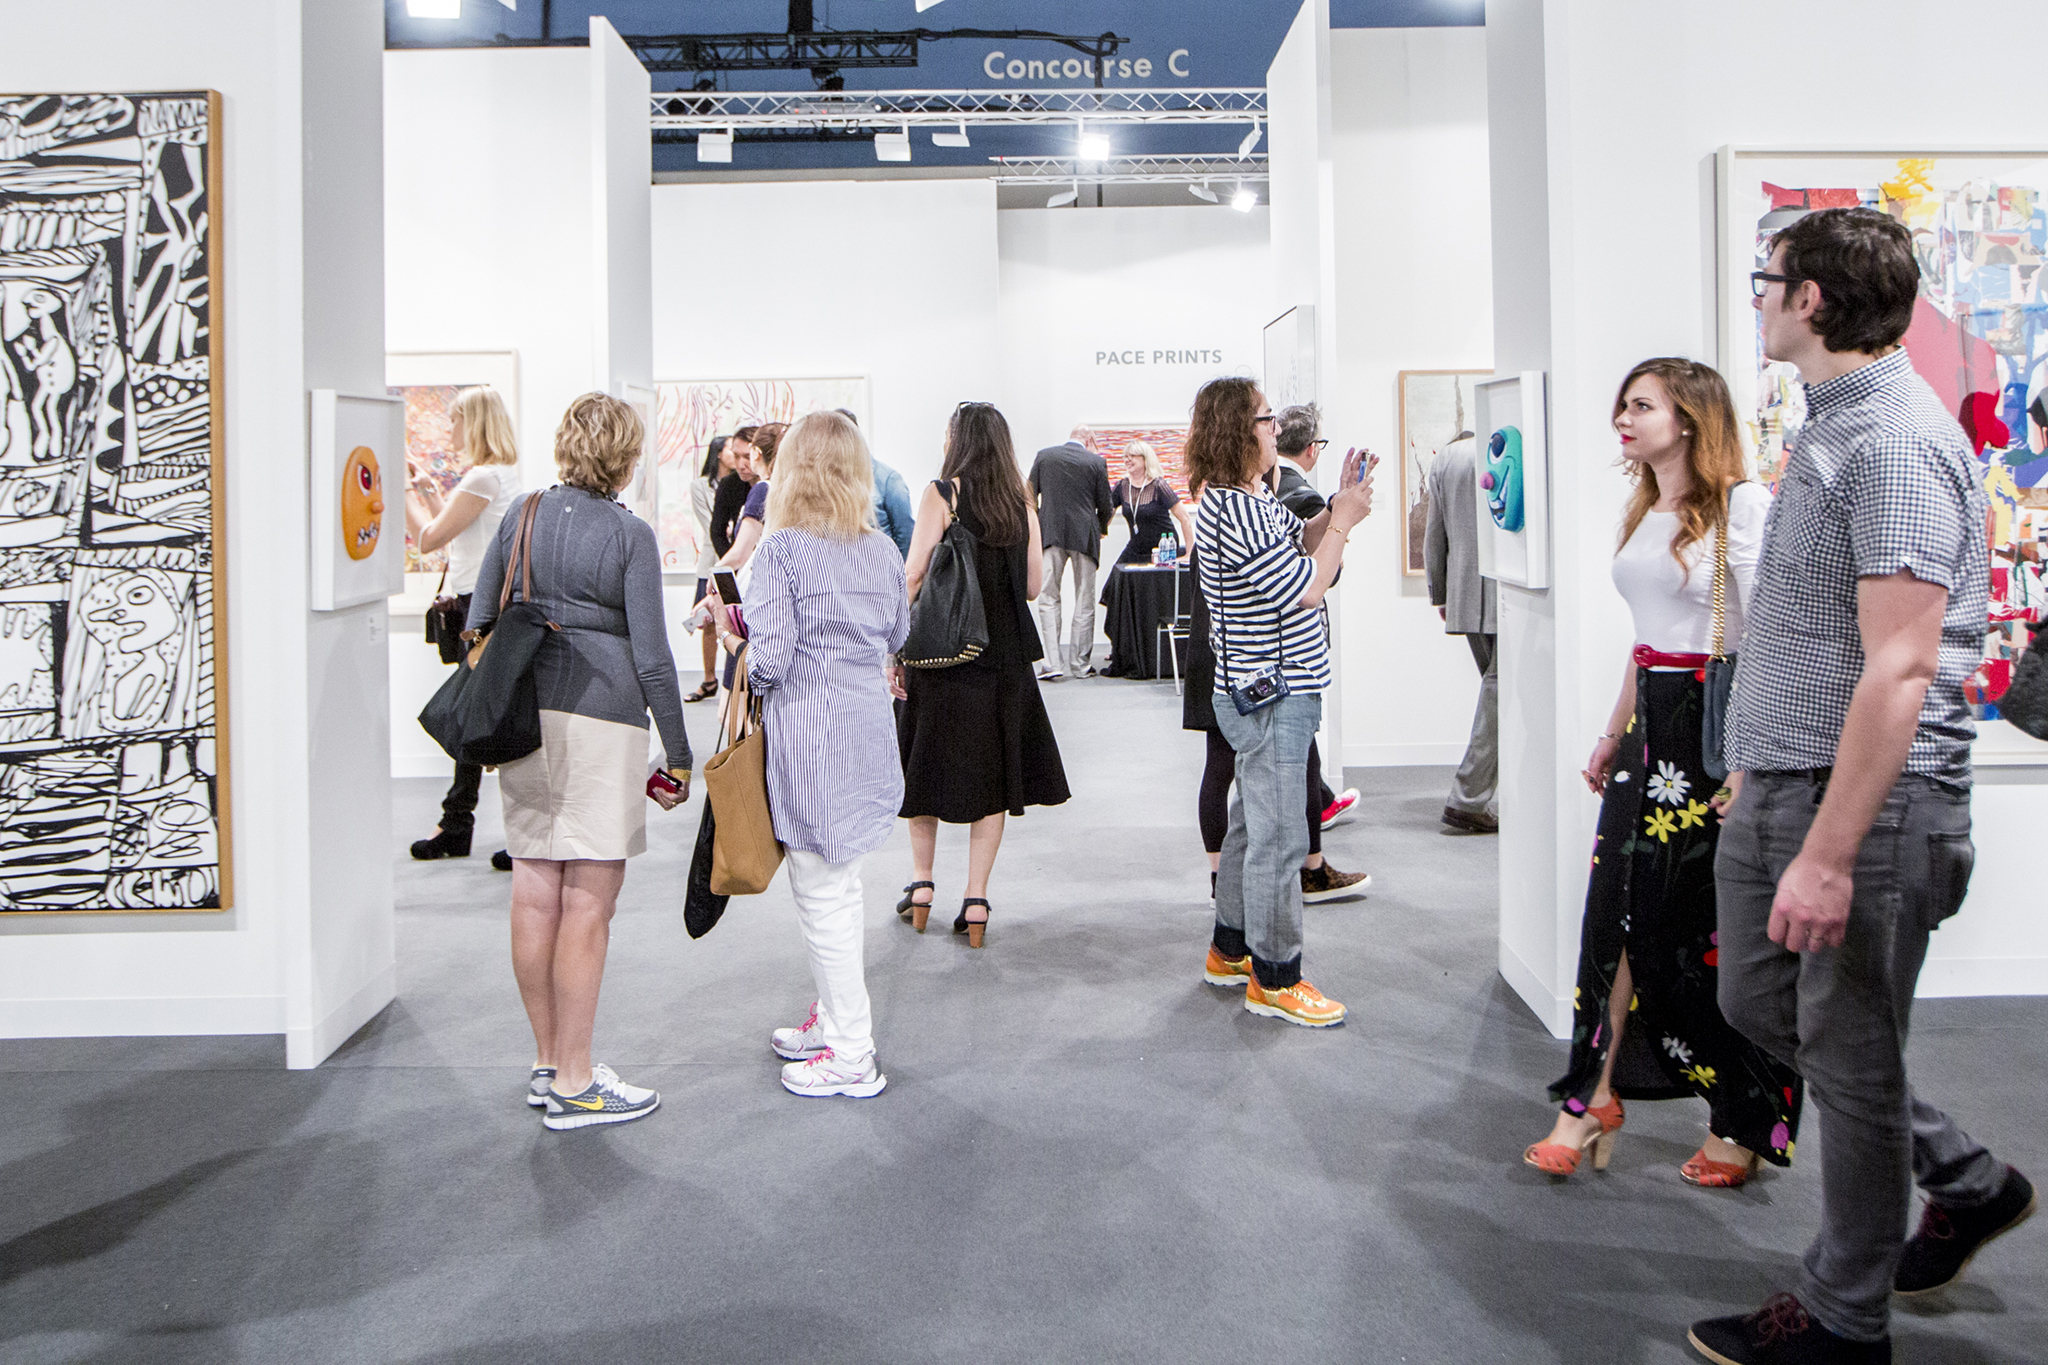 15 Art Basel Miami 2015 galleries you must see